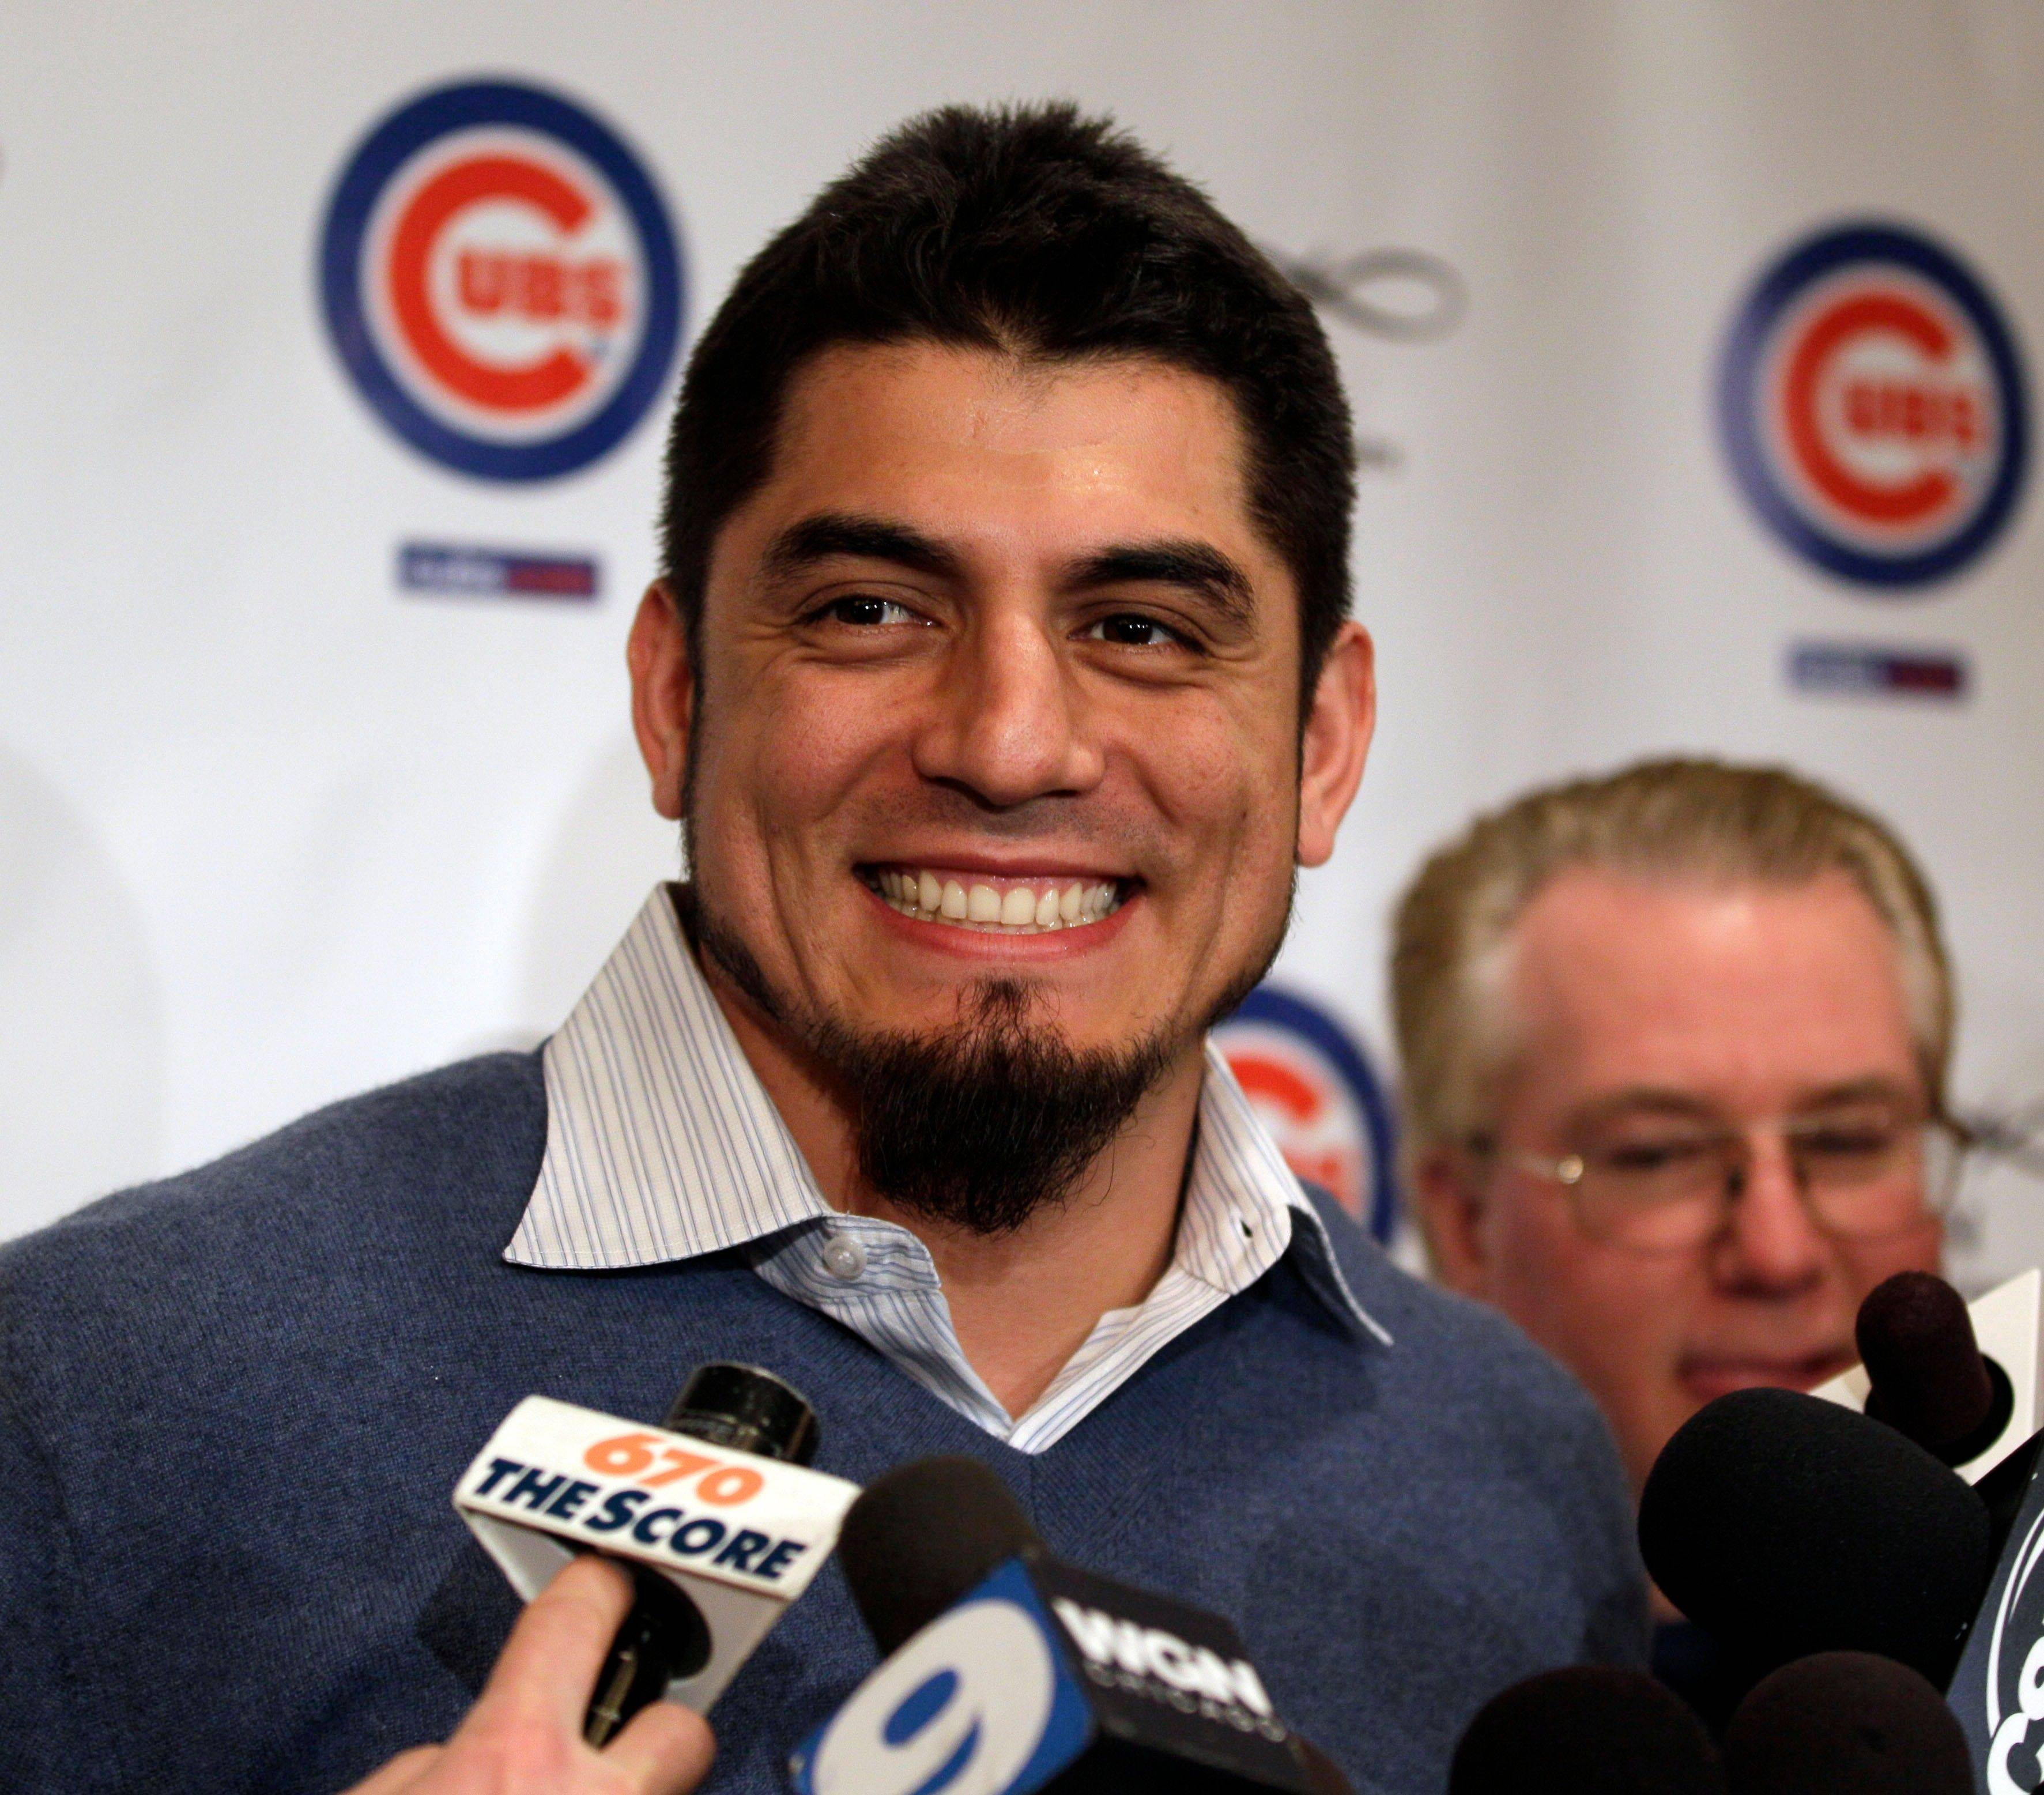 Chicago Cubs pitcher Matt Garza speaks to reporters during the 27th annual Chicago Cubs baseball convention in Chicago on Friday, Jan. 13, 2012.